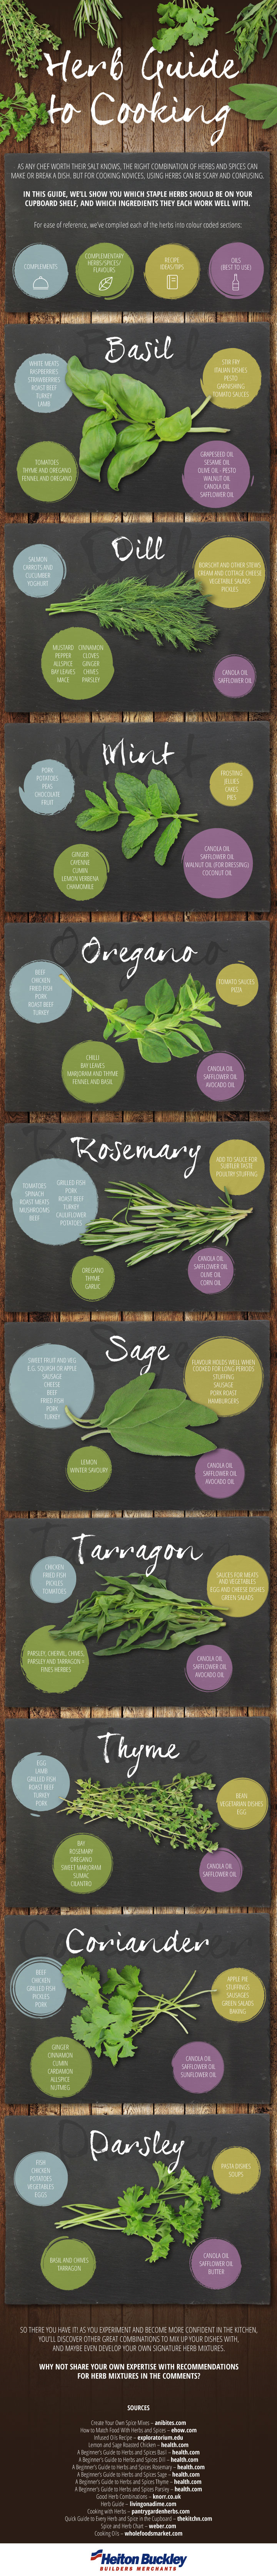 Herb Guide To Cooking